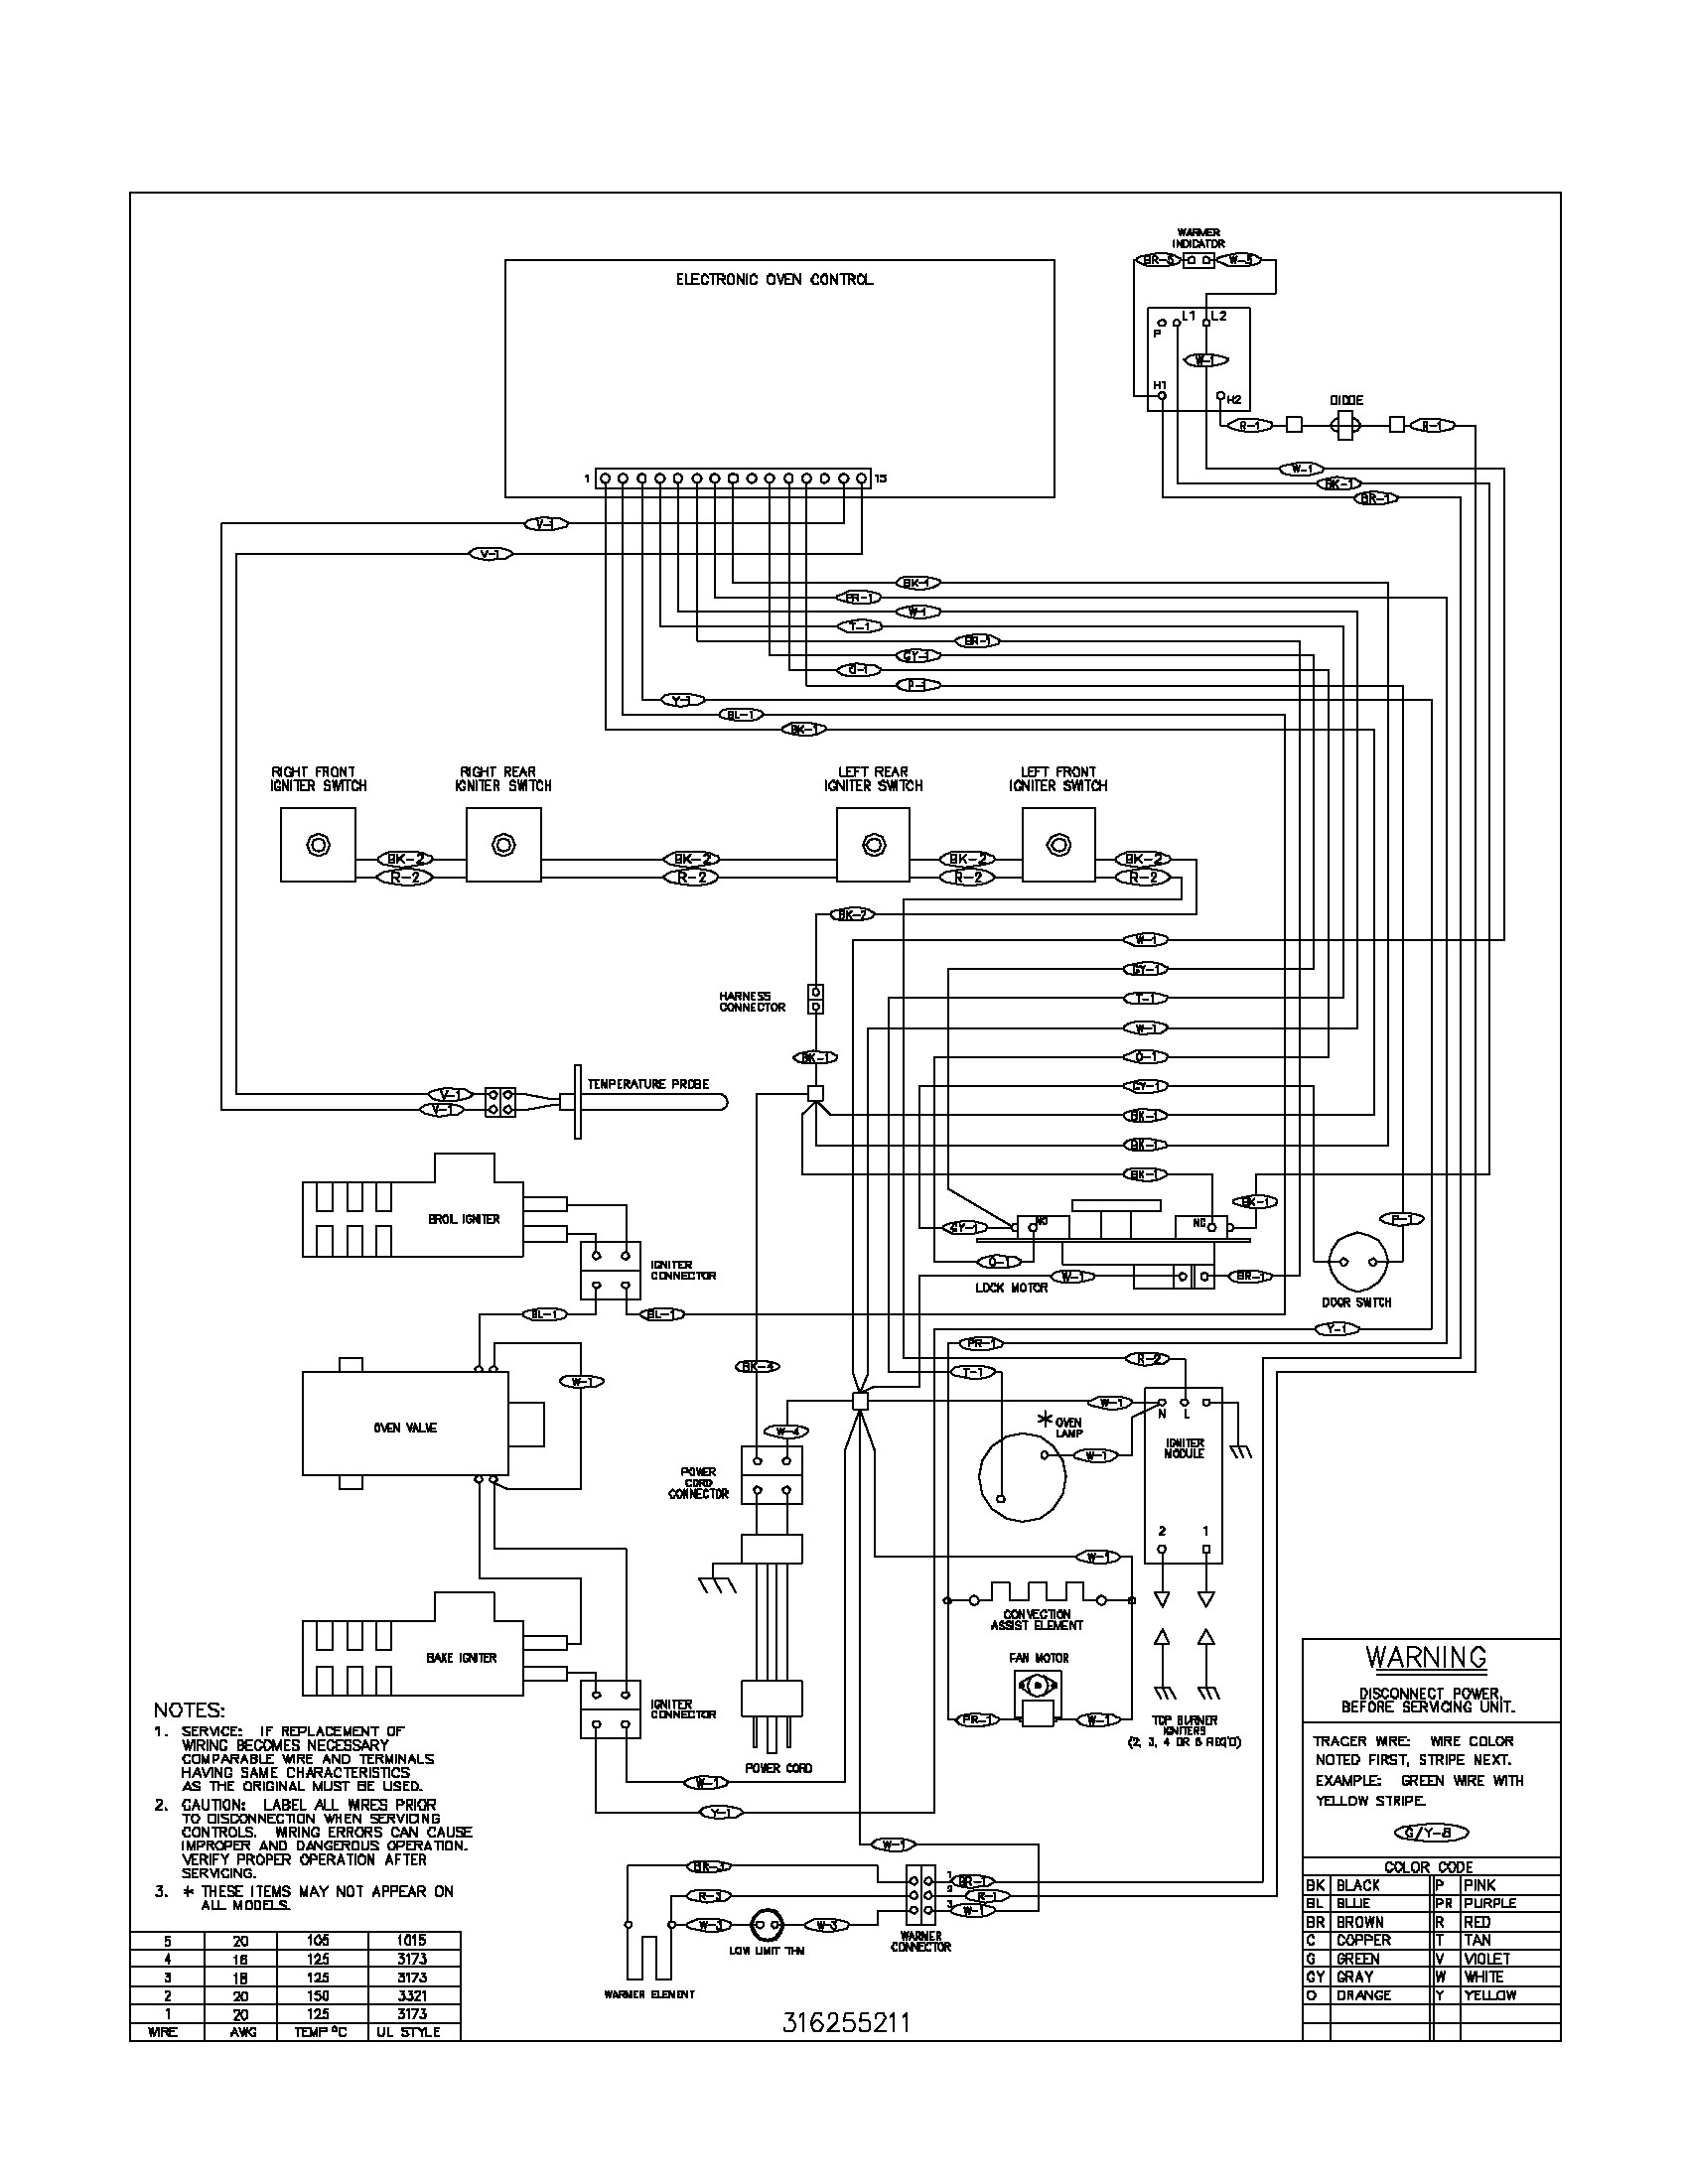 frigidaire dryer wiring diagram Download-frigidaire refrigerator wiring diagram Collection Wiring Diagram For Frigidaire Refrigerator Wiring Diagram Best Ideas 5 DOWNLOAD Wiring Diagram 12-f